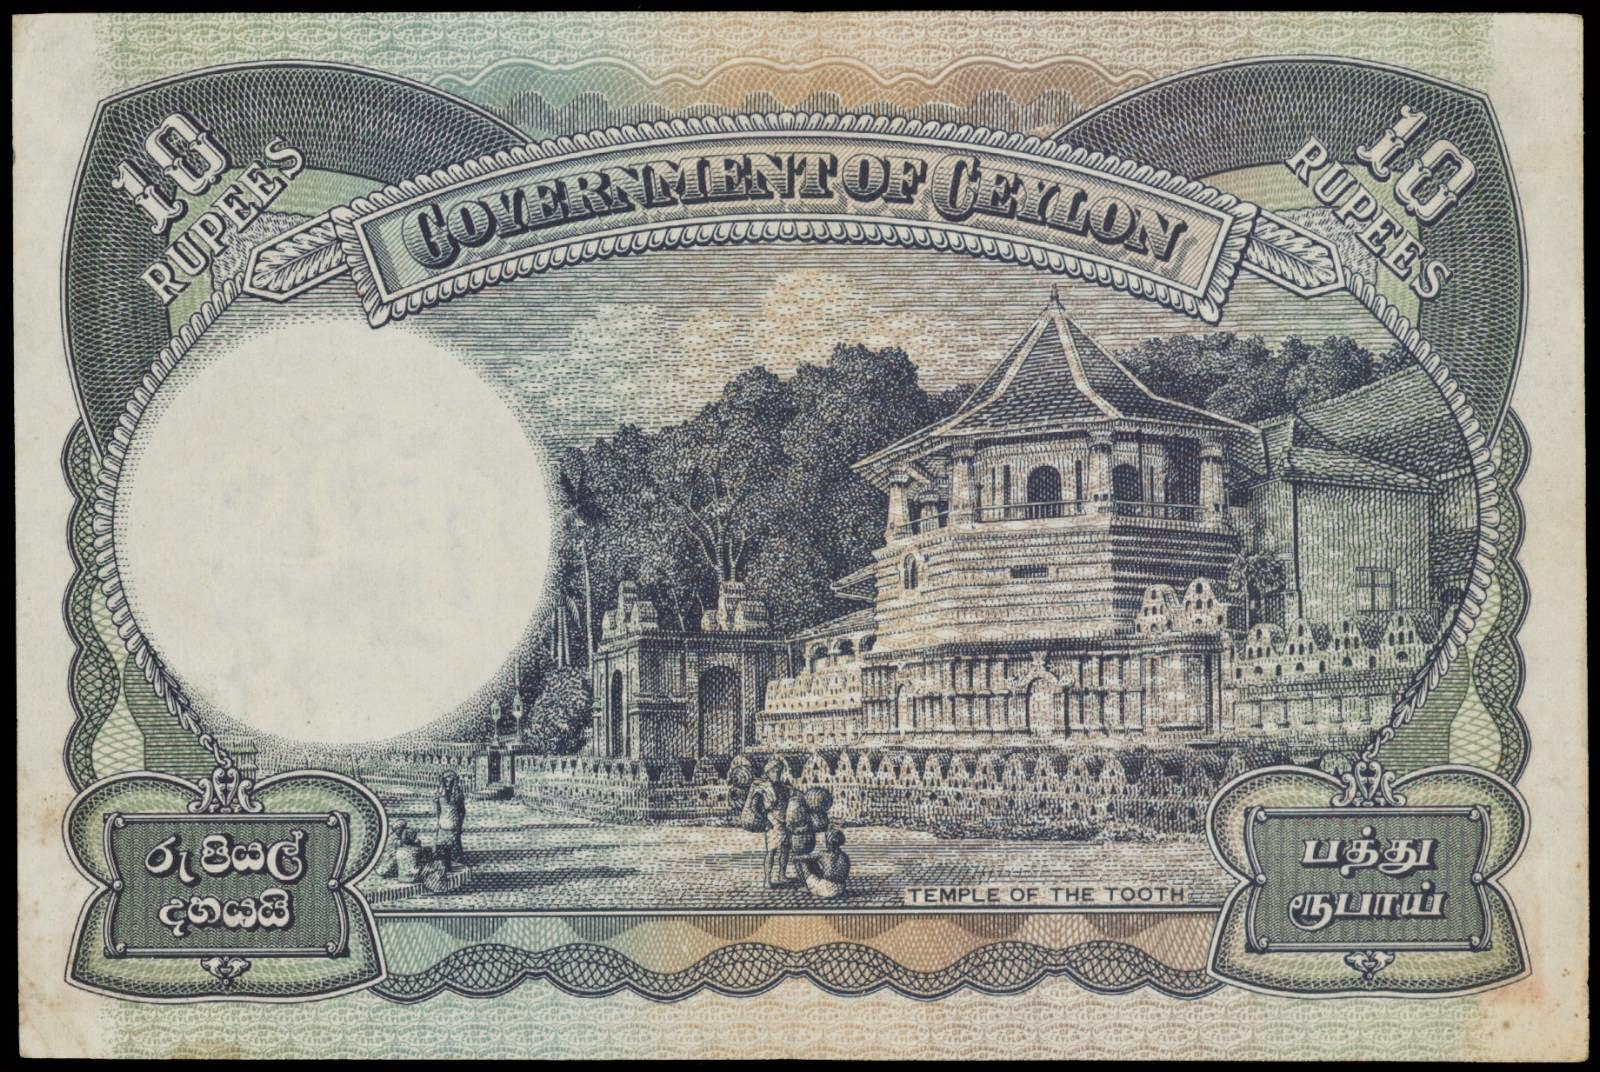 Ceylon currency 10 Rupees note 1945